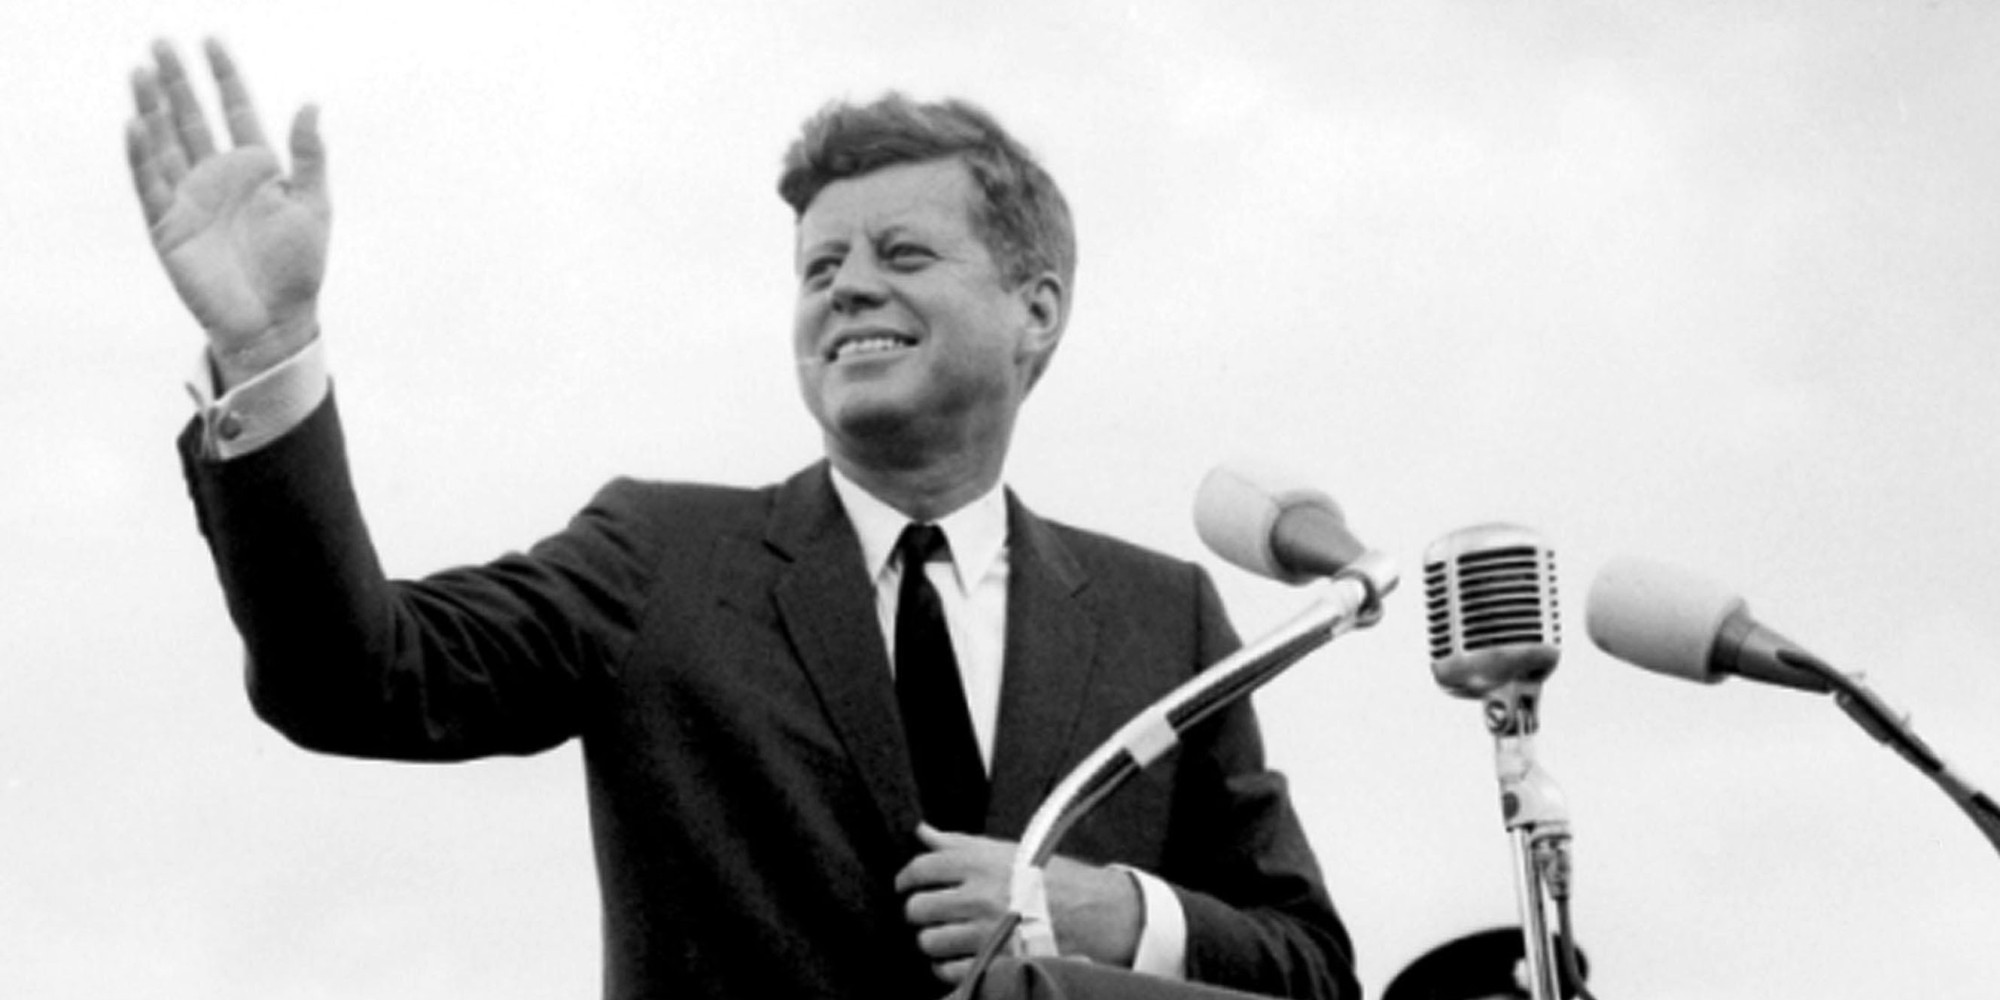 john f kennedy inaugural speech vox populi file photo dated 27 06 1963 of us president john f kennedy acknowledging